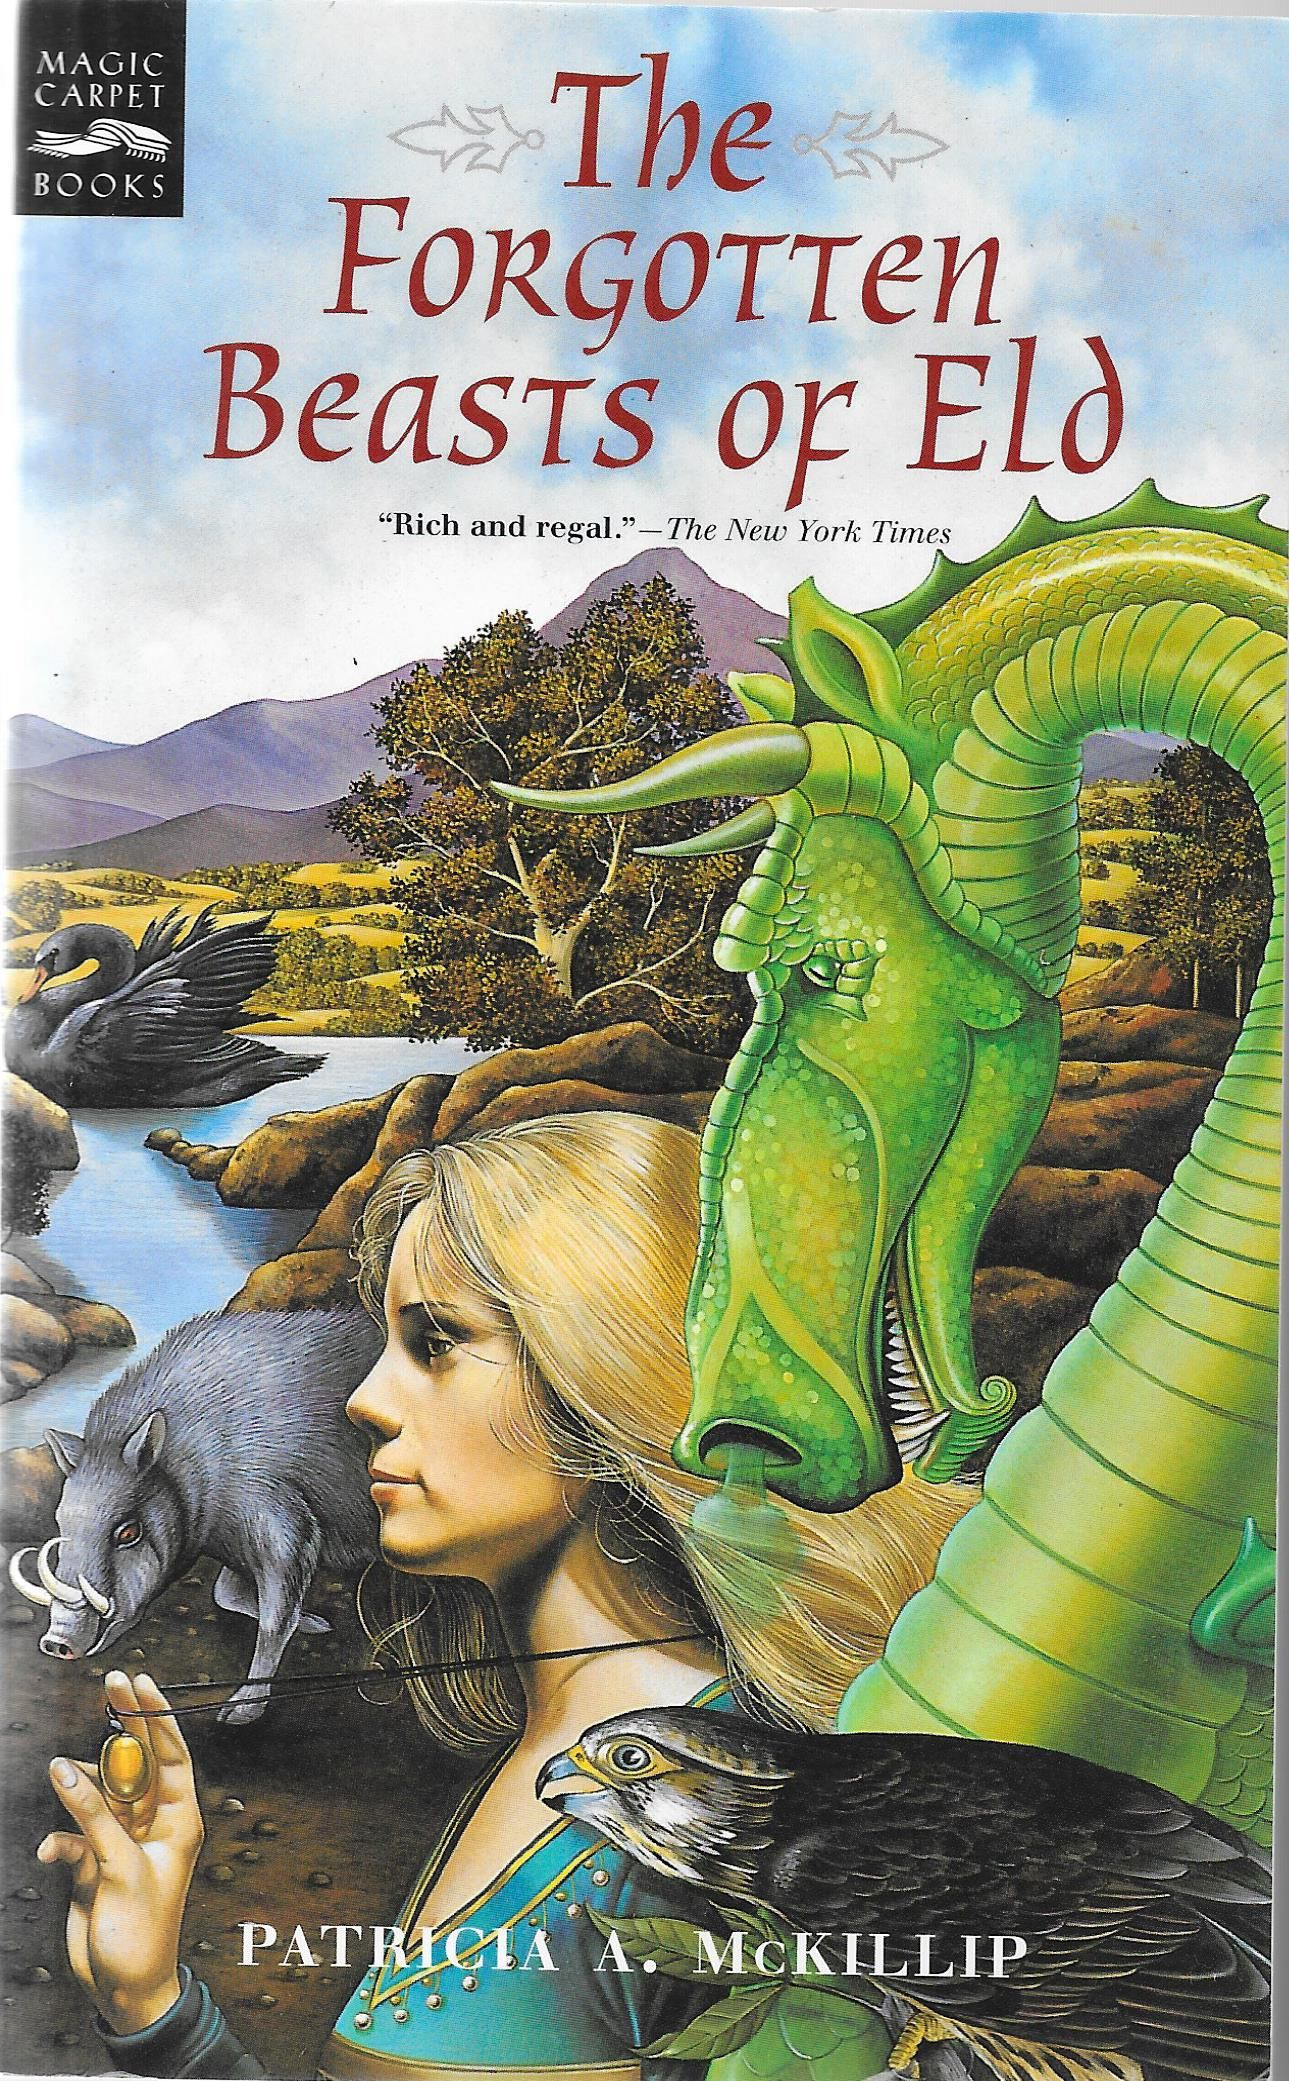 'The Beasts of Eld' by Patricia A. McKillip